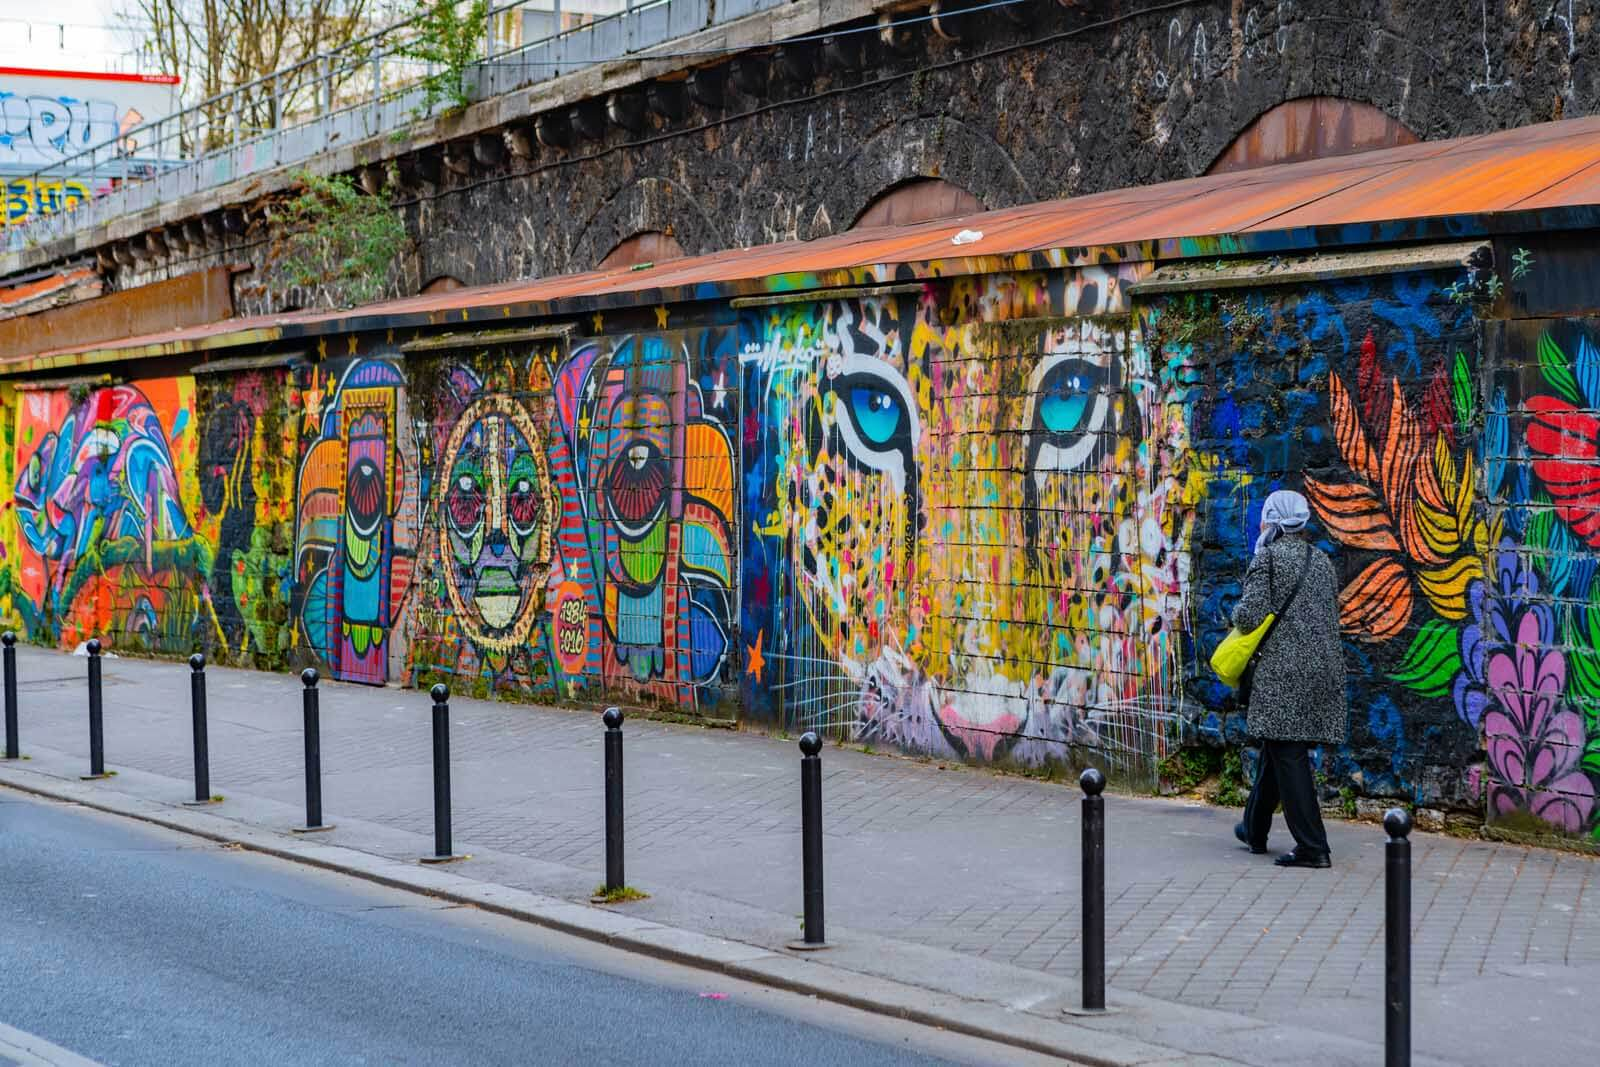 the colorful murals in Ourcq the Paris Street Art Scene